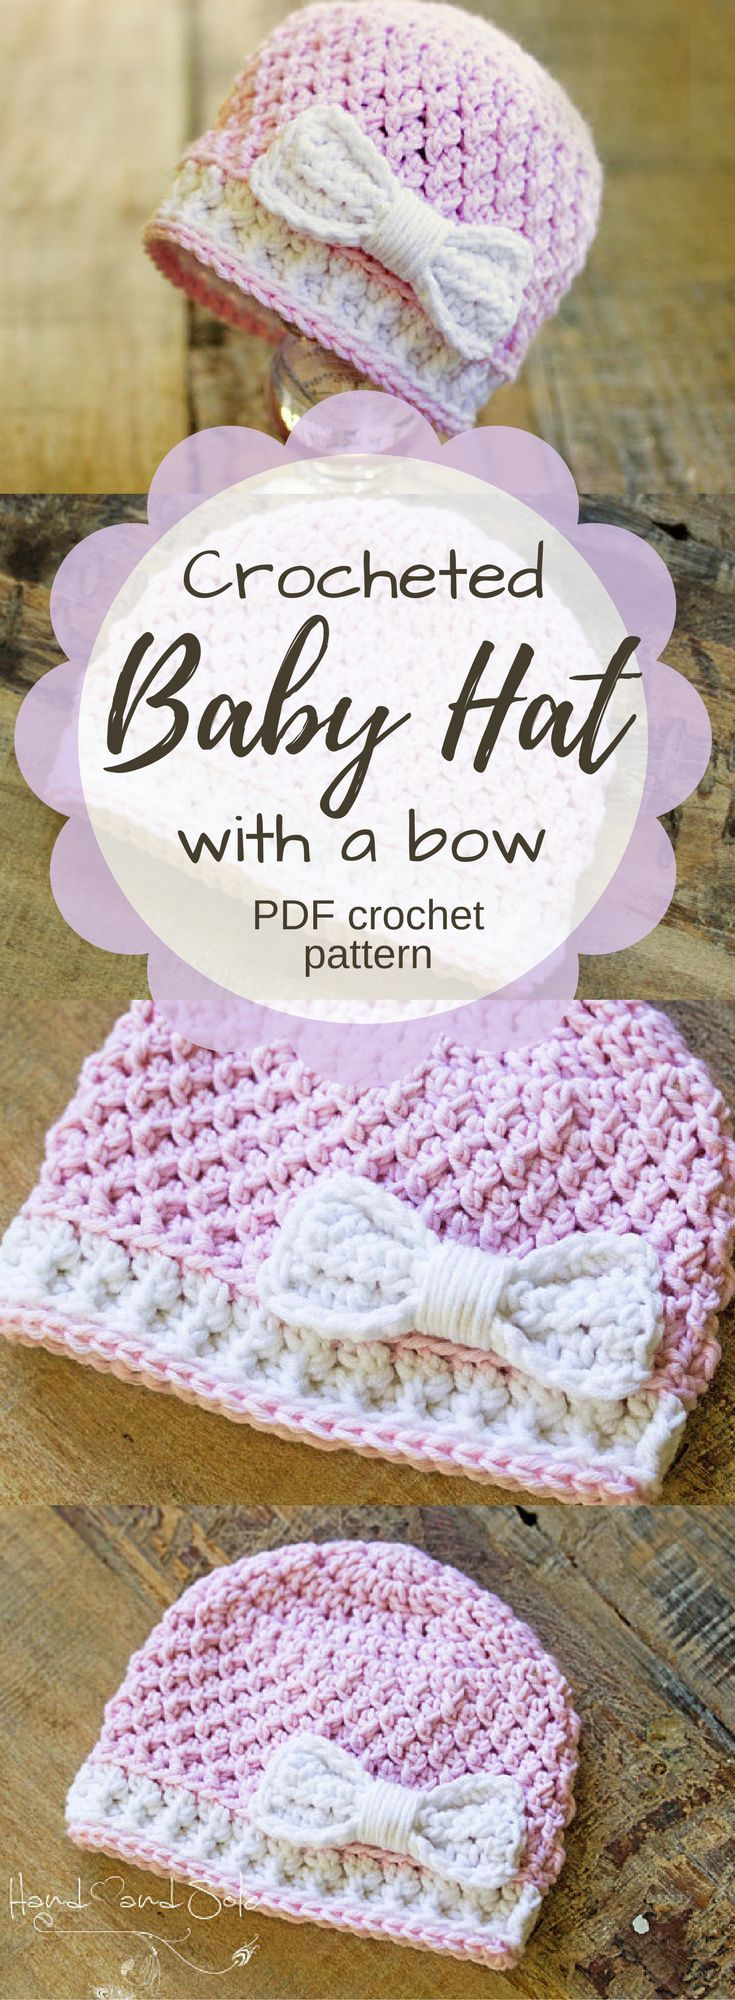 Cute pattern for a crocheted baby hat with a bow. Would be adorable on a new baby girl! Love the stitch pattern and the bow detail! #etsy #ad #pdf #instantdownload